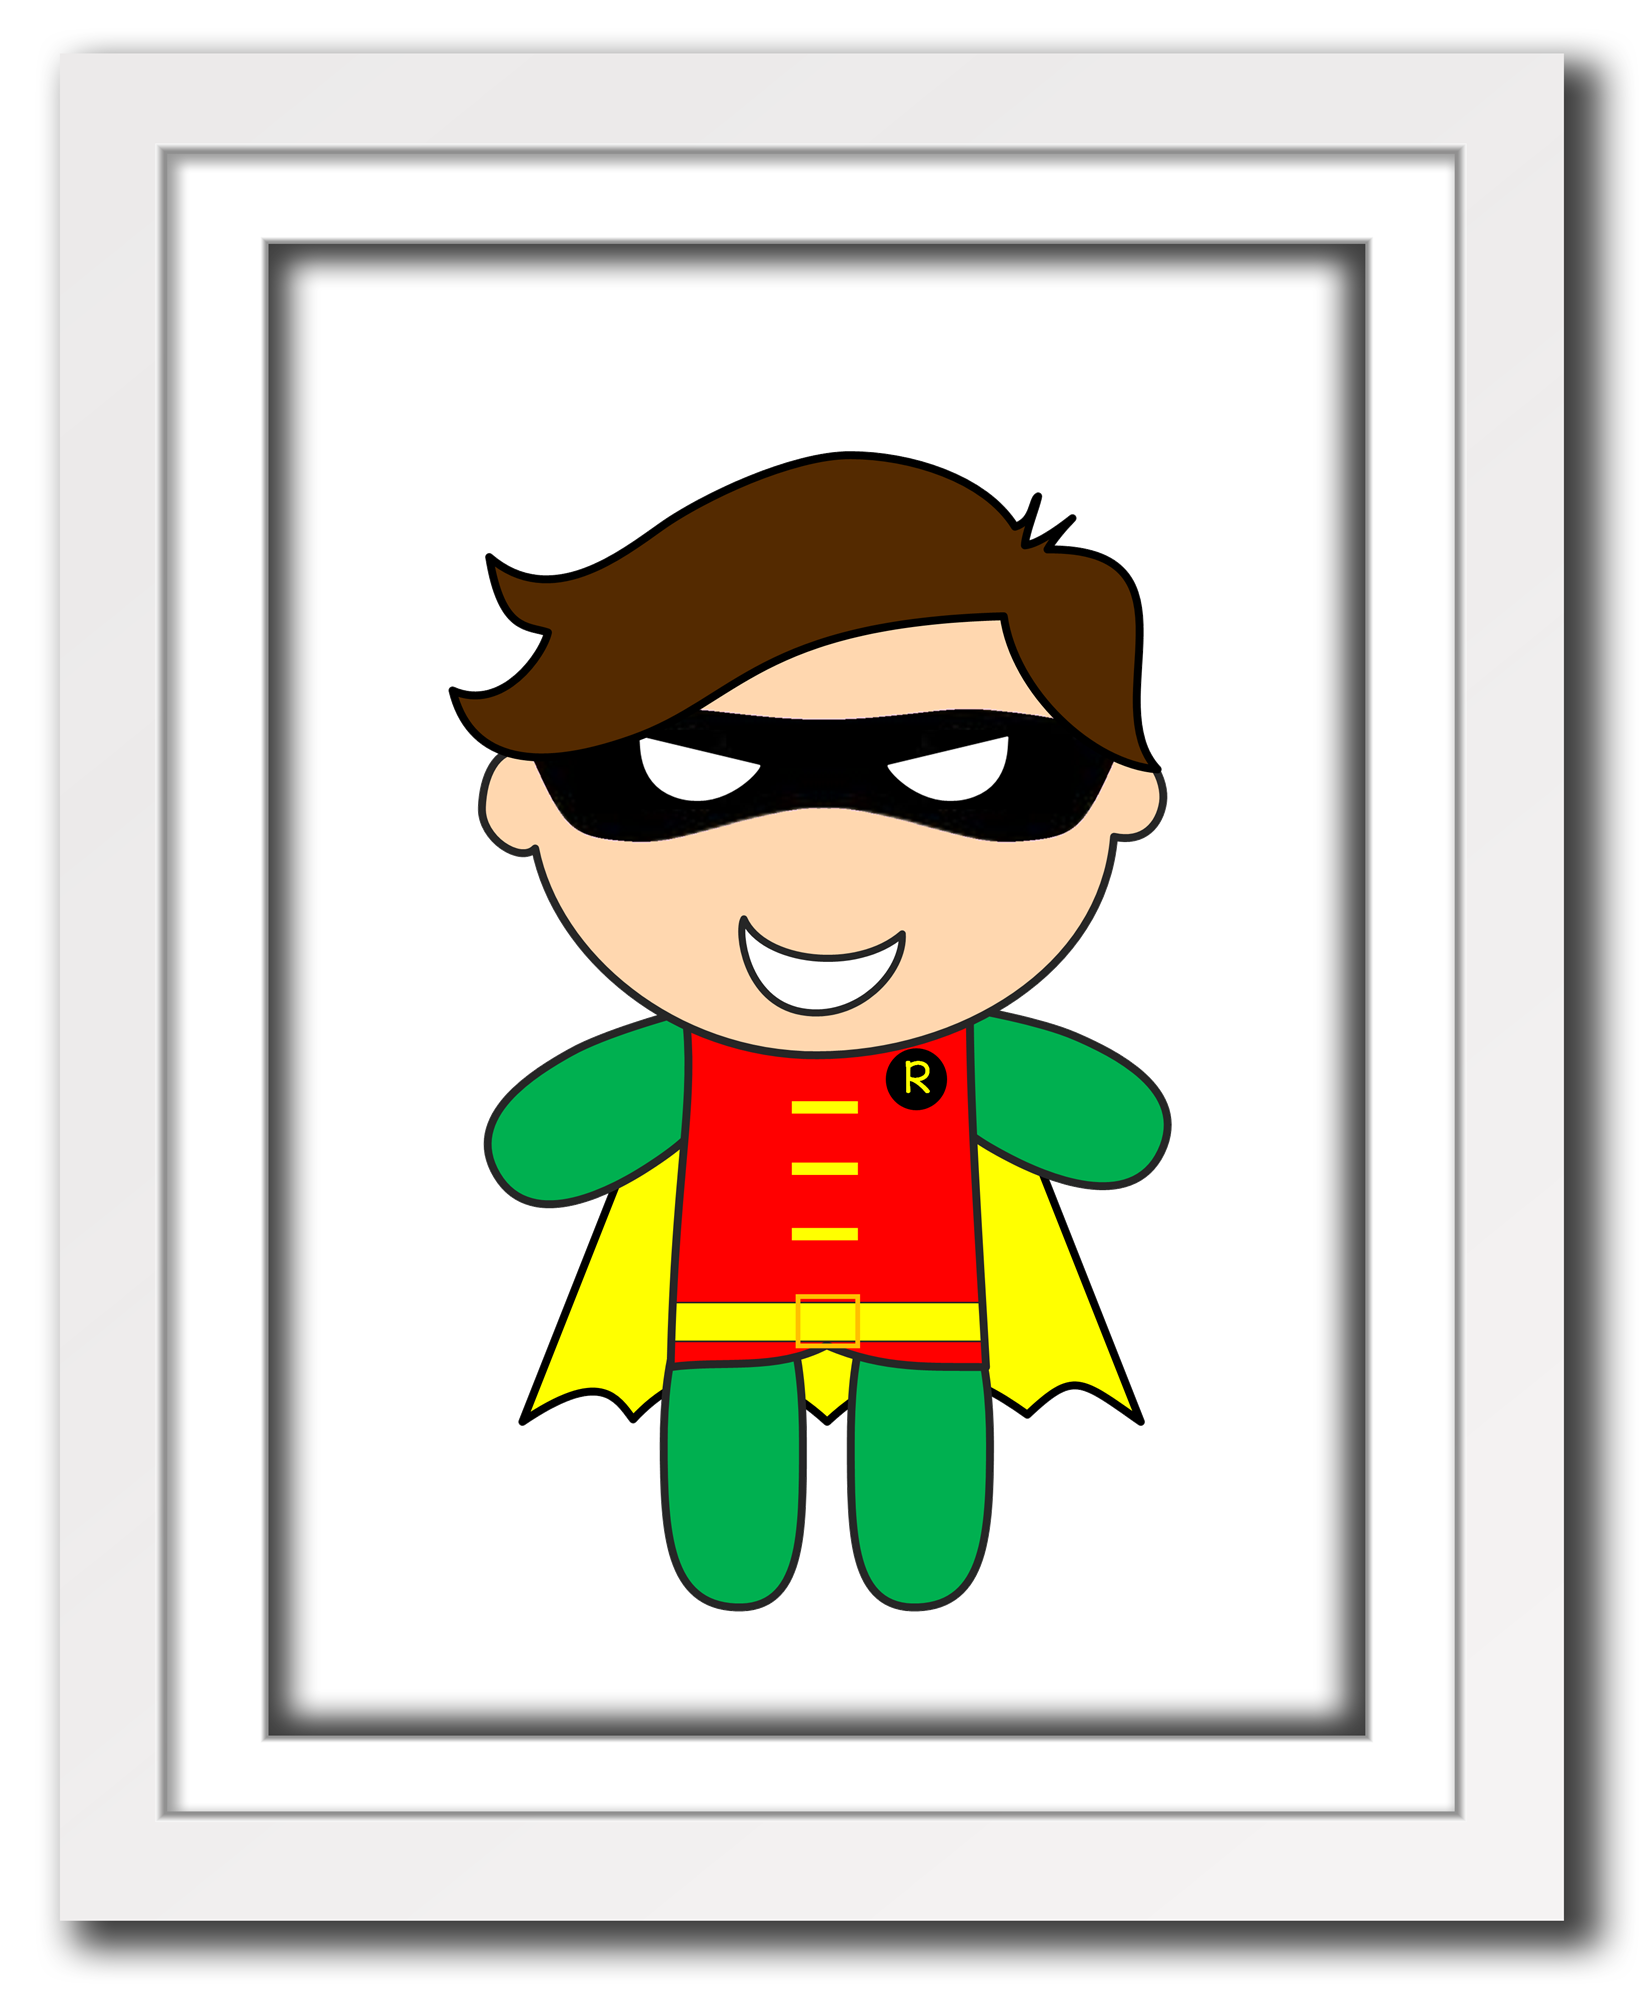 Superhero Art For Little Boys: Superhero Robin Print For Little Boys Room Or Nursery